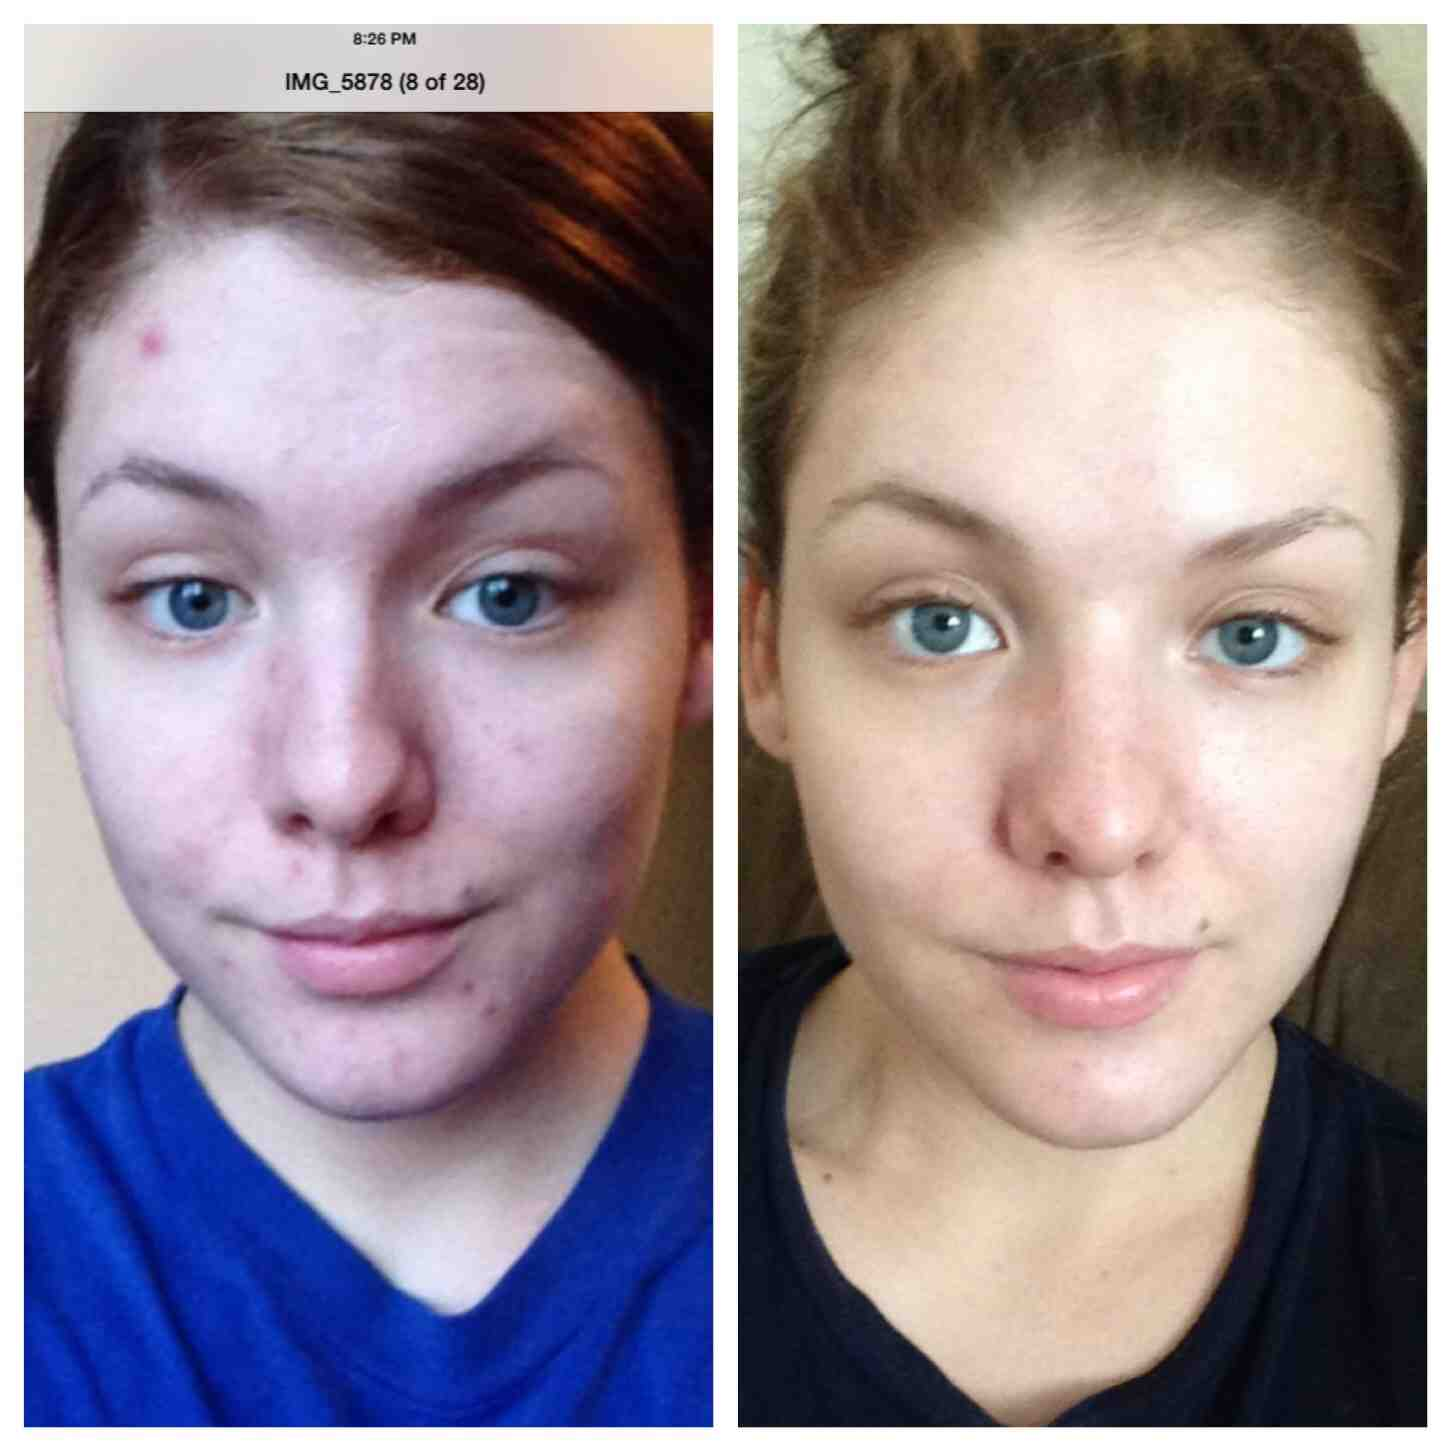 I Wanted To Post A Before And After Picture Of The: MHG Miracle Gel: MHG Miracle Gel